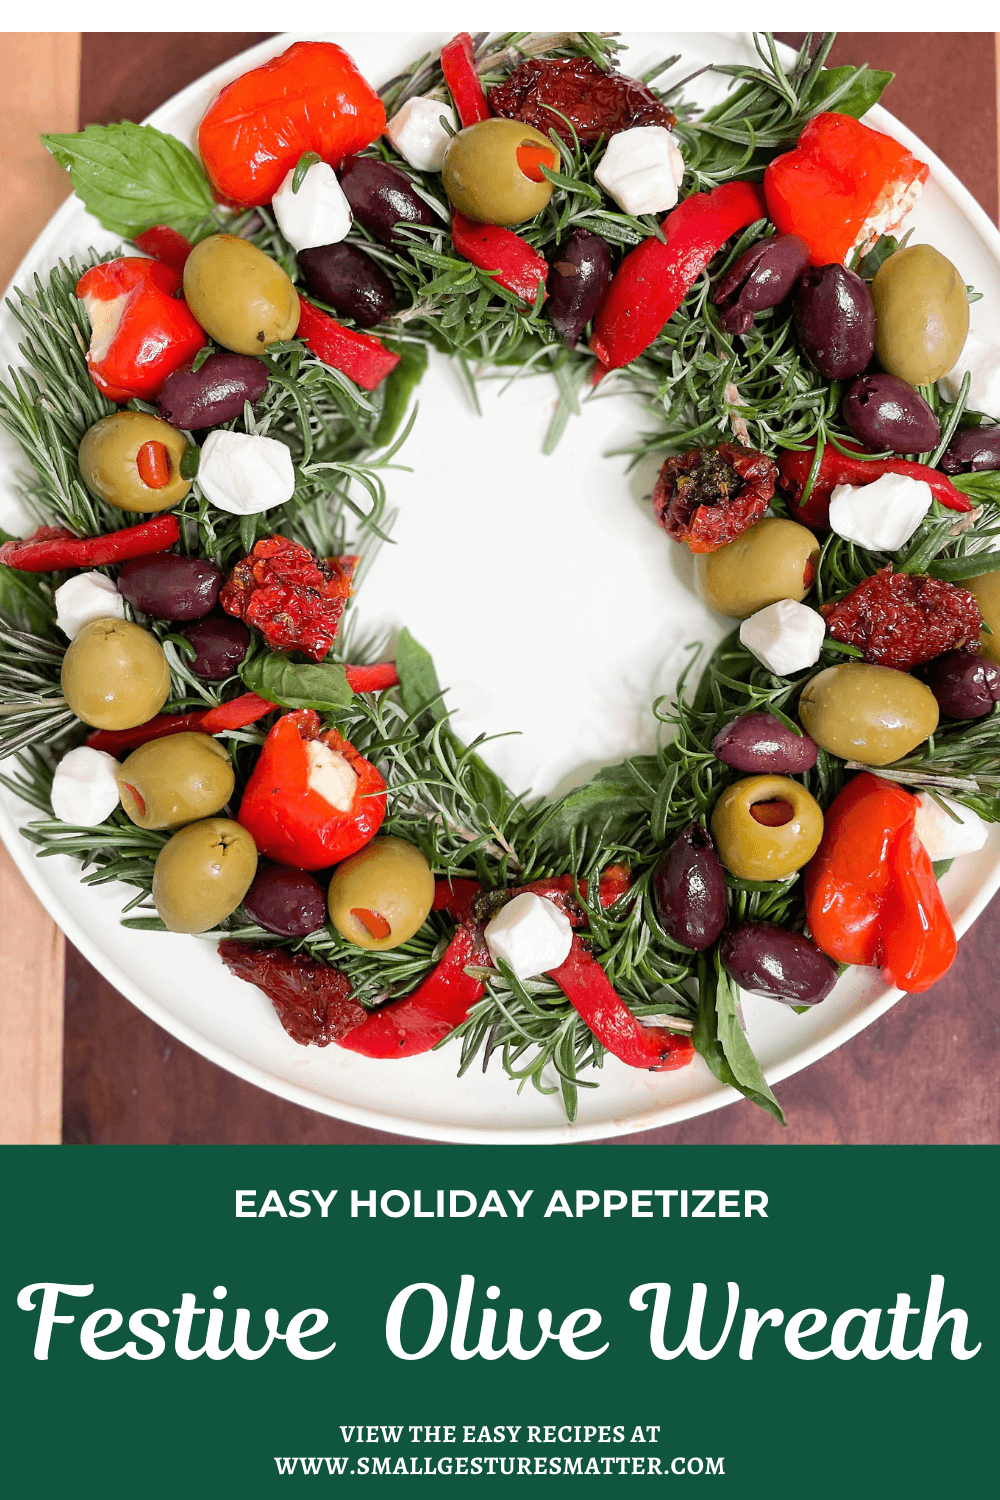 Olive wreath with fresh herbs - holiday appetizer